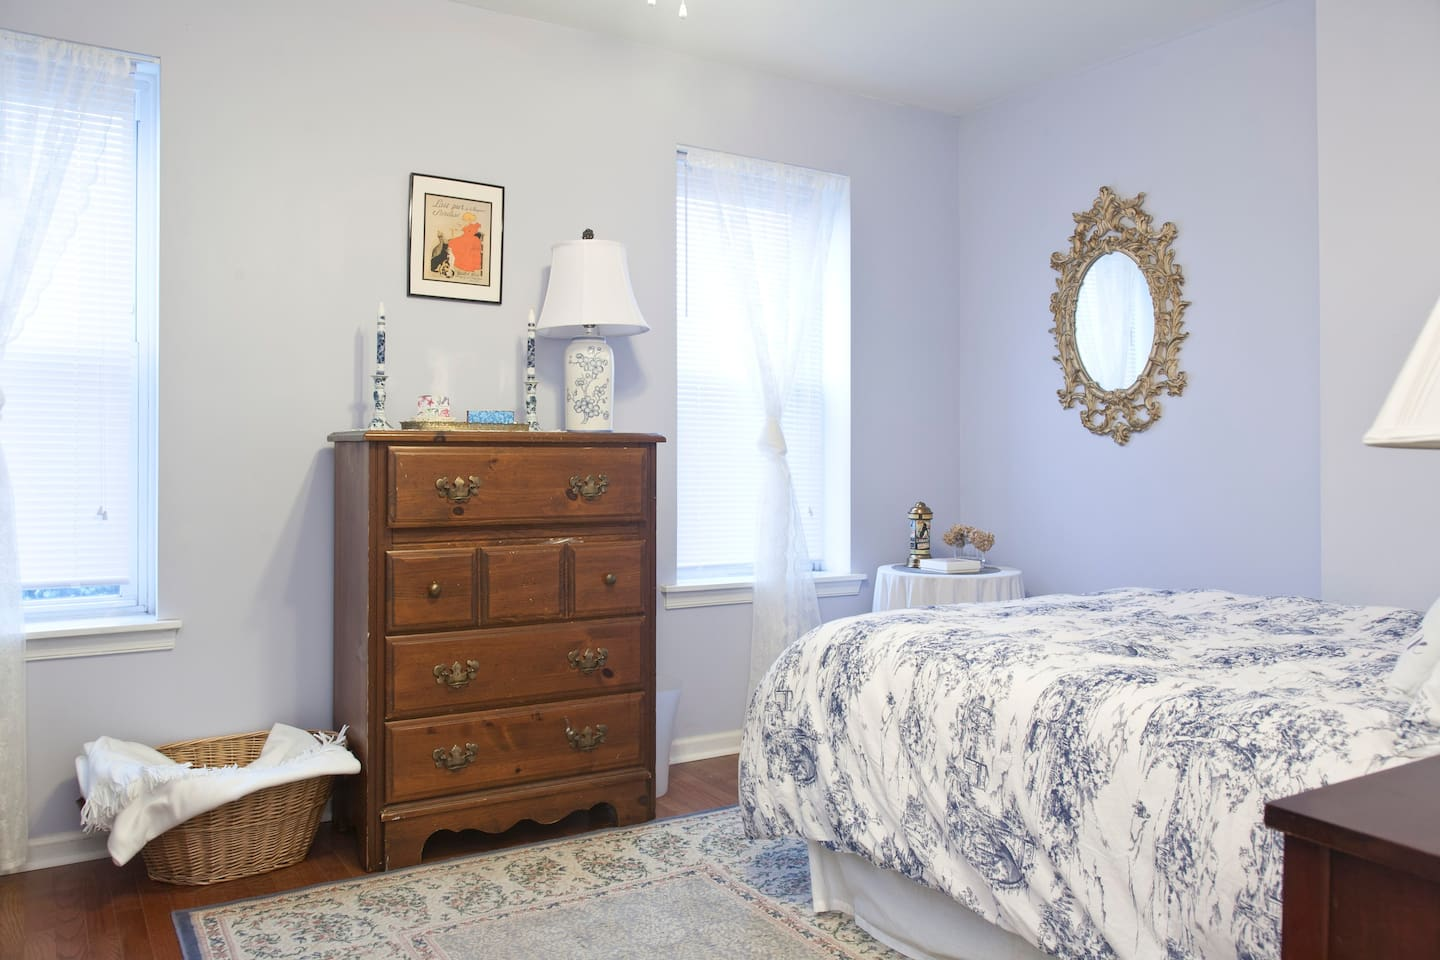 Comfy bed, spacious room, lots of natural light, ceiling fan or central air. You can even see a tiny bit of the Philly skyline and bridges to New Jersey out of the left window. Look for the famous milk bottle tower as well!